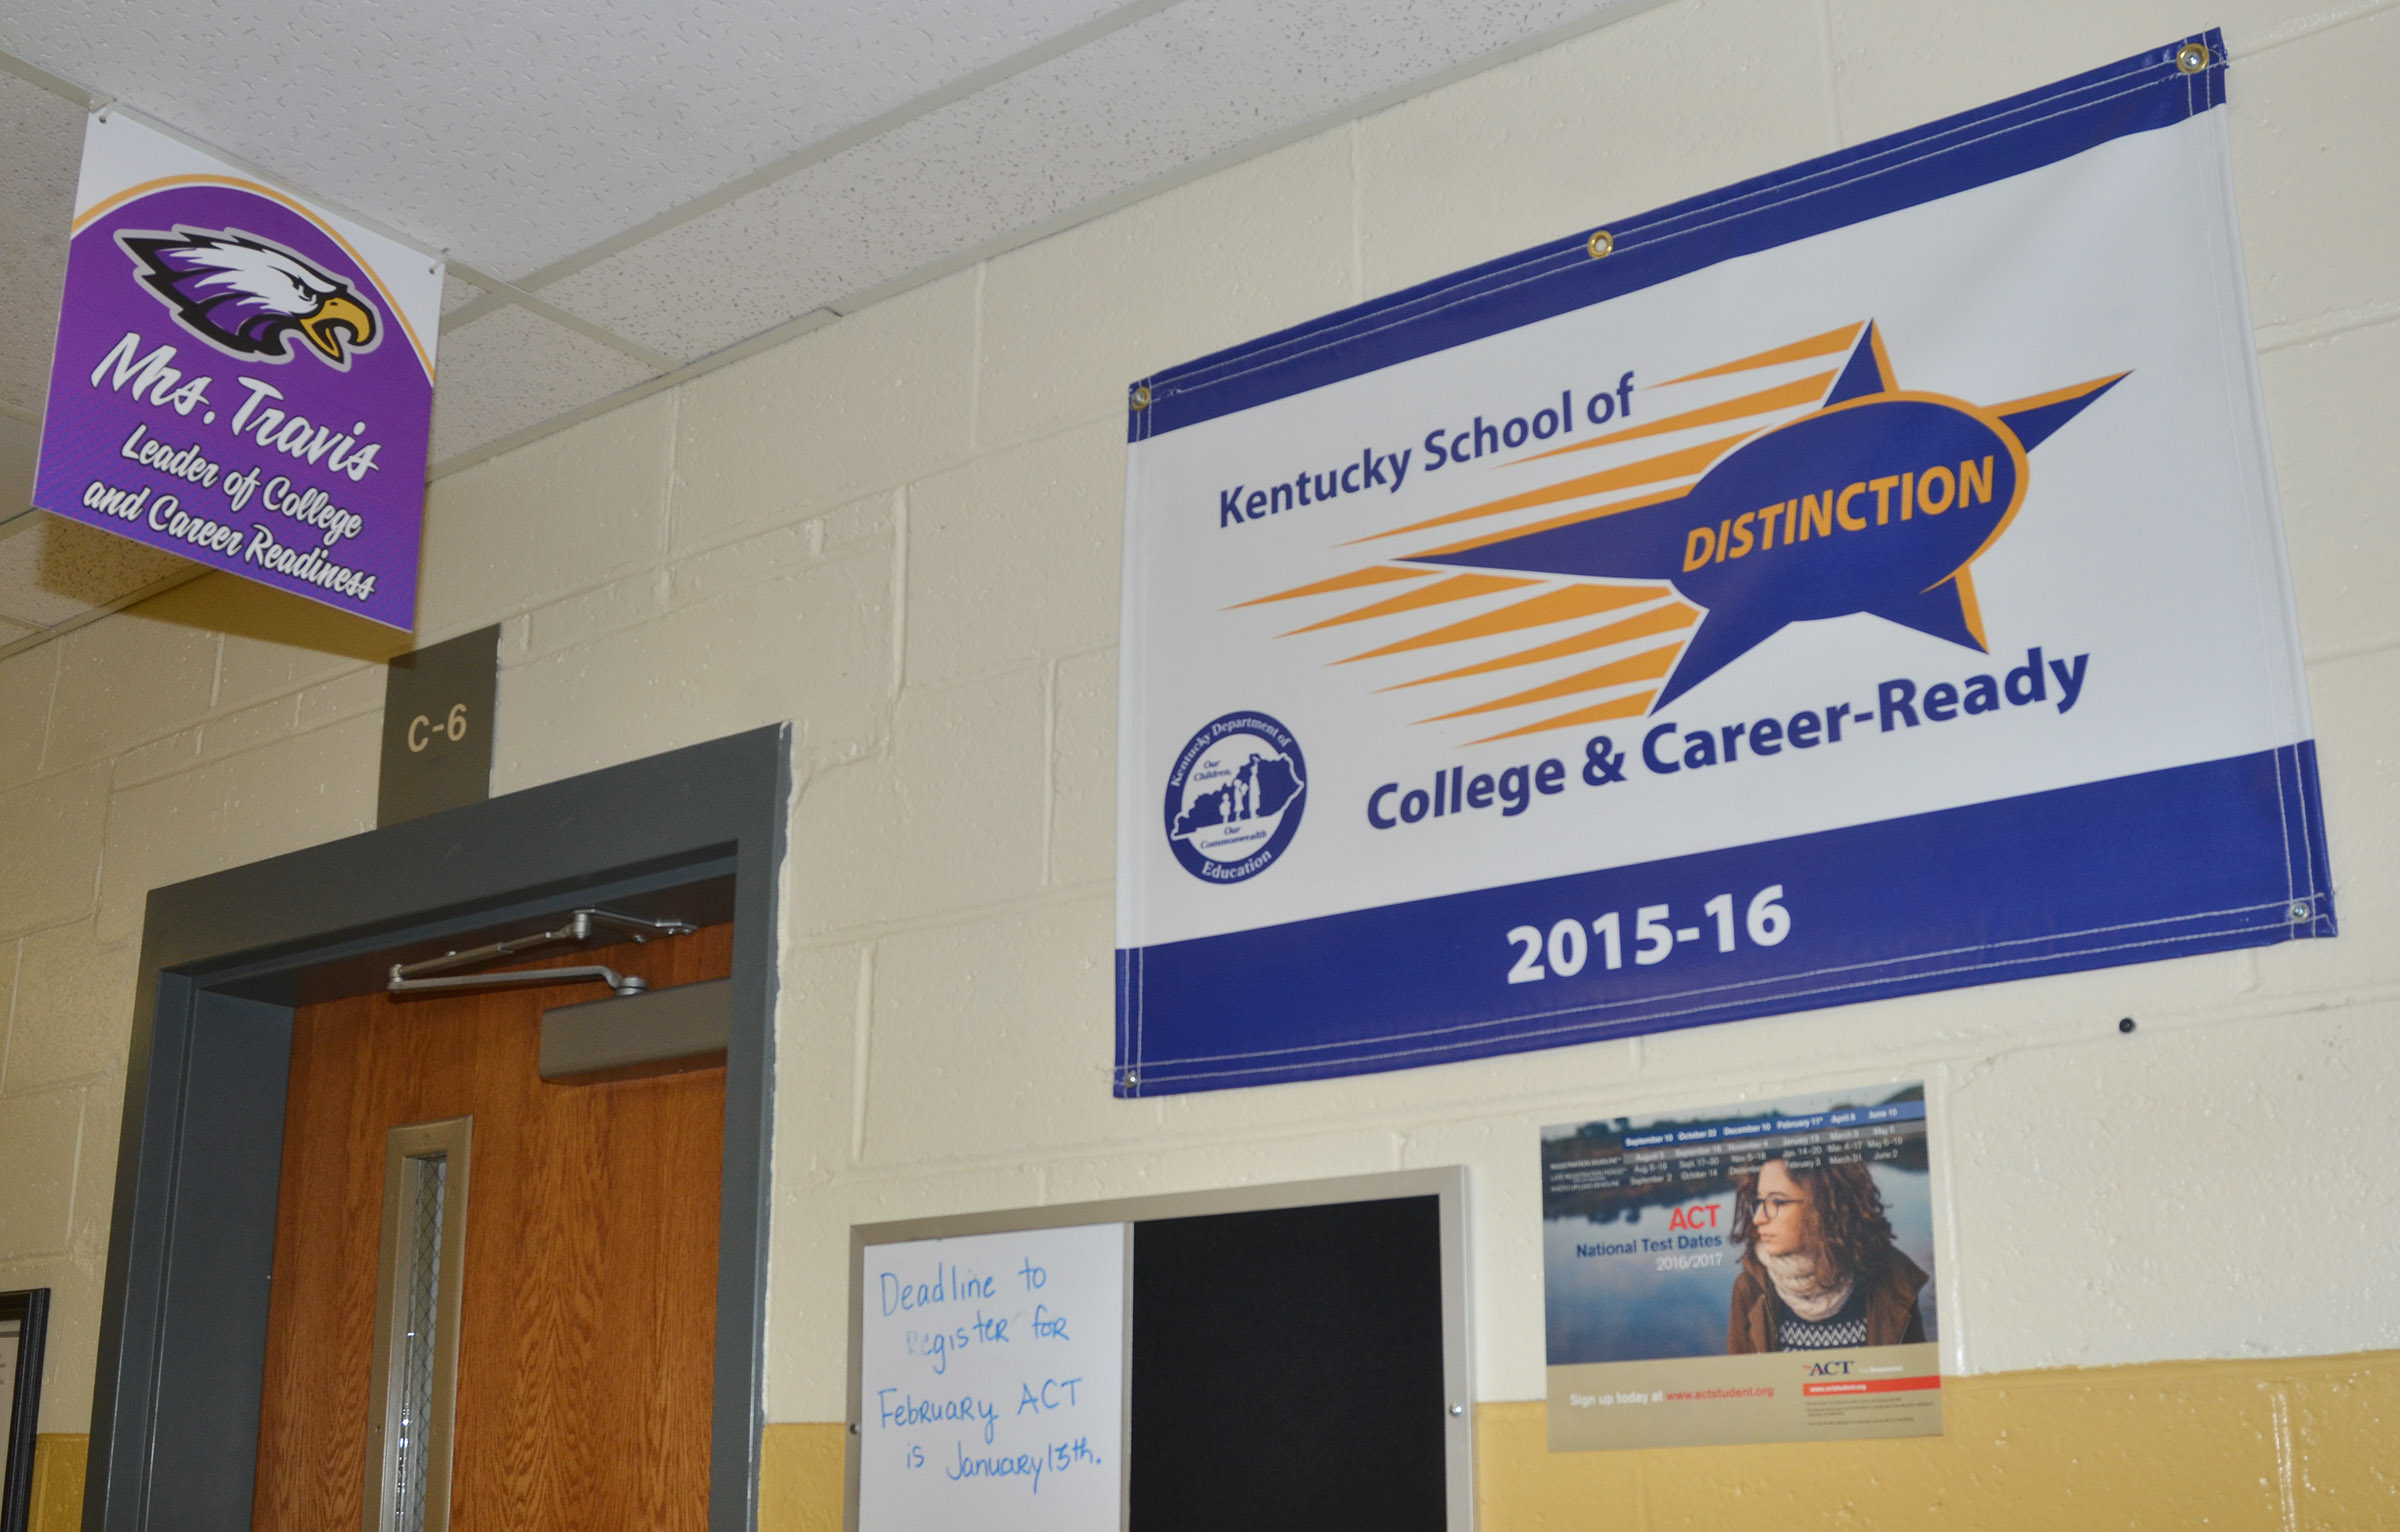 This School of Distinction banner hangs by the college and career readiness center at Campbellsville High School.